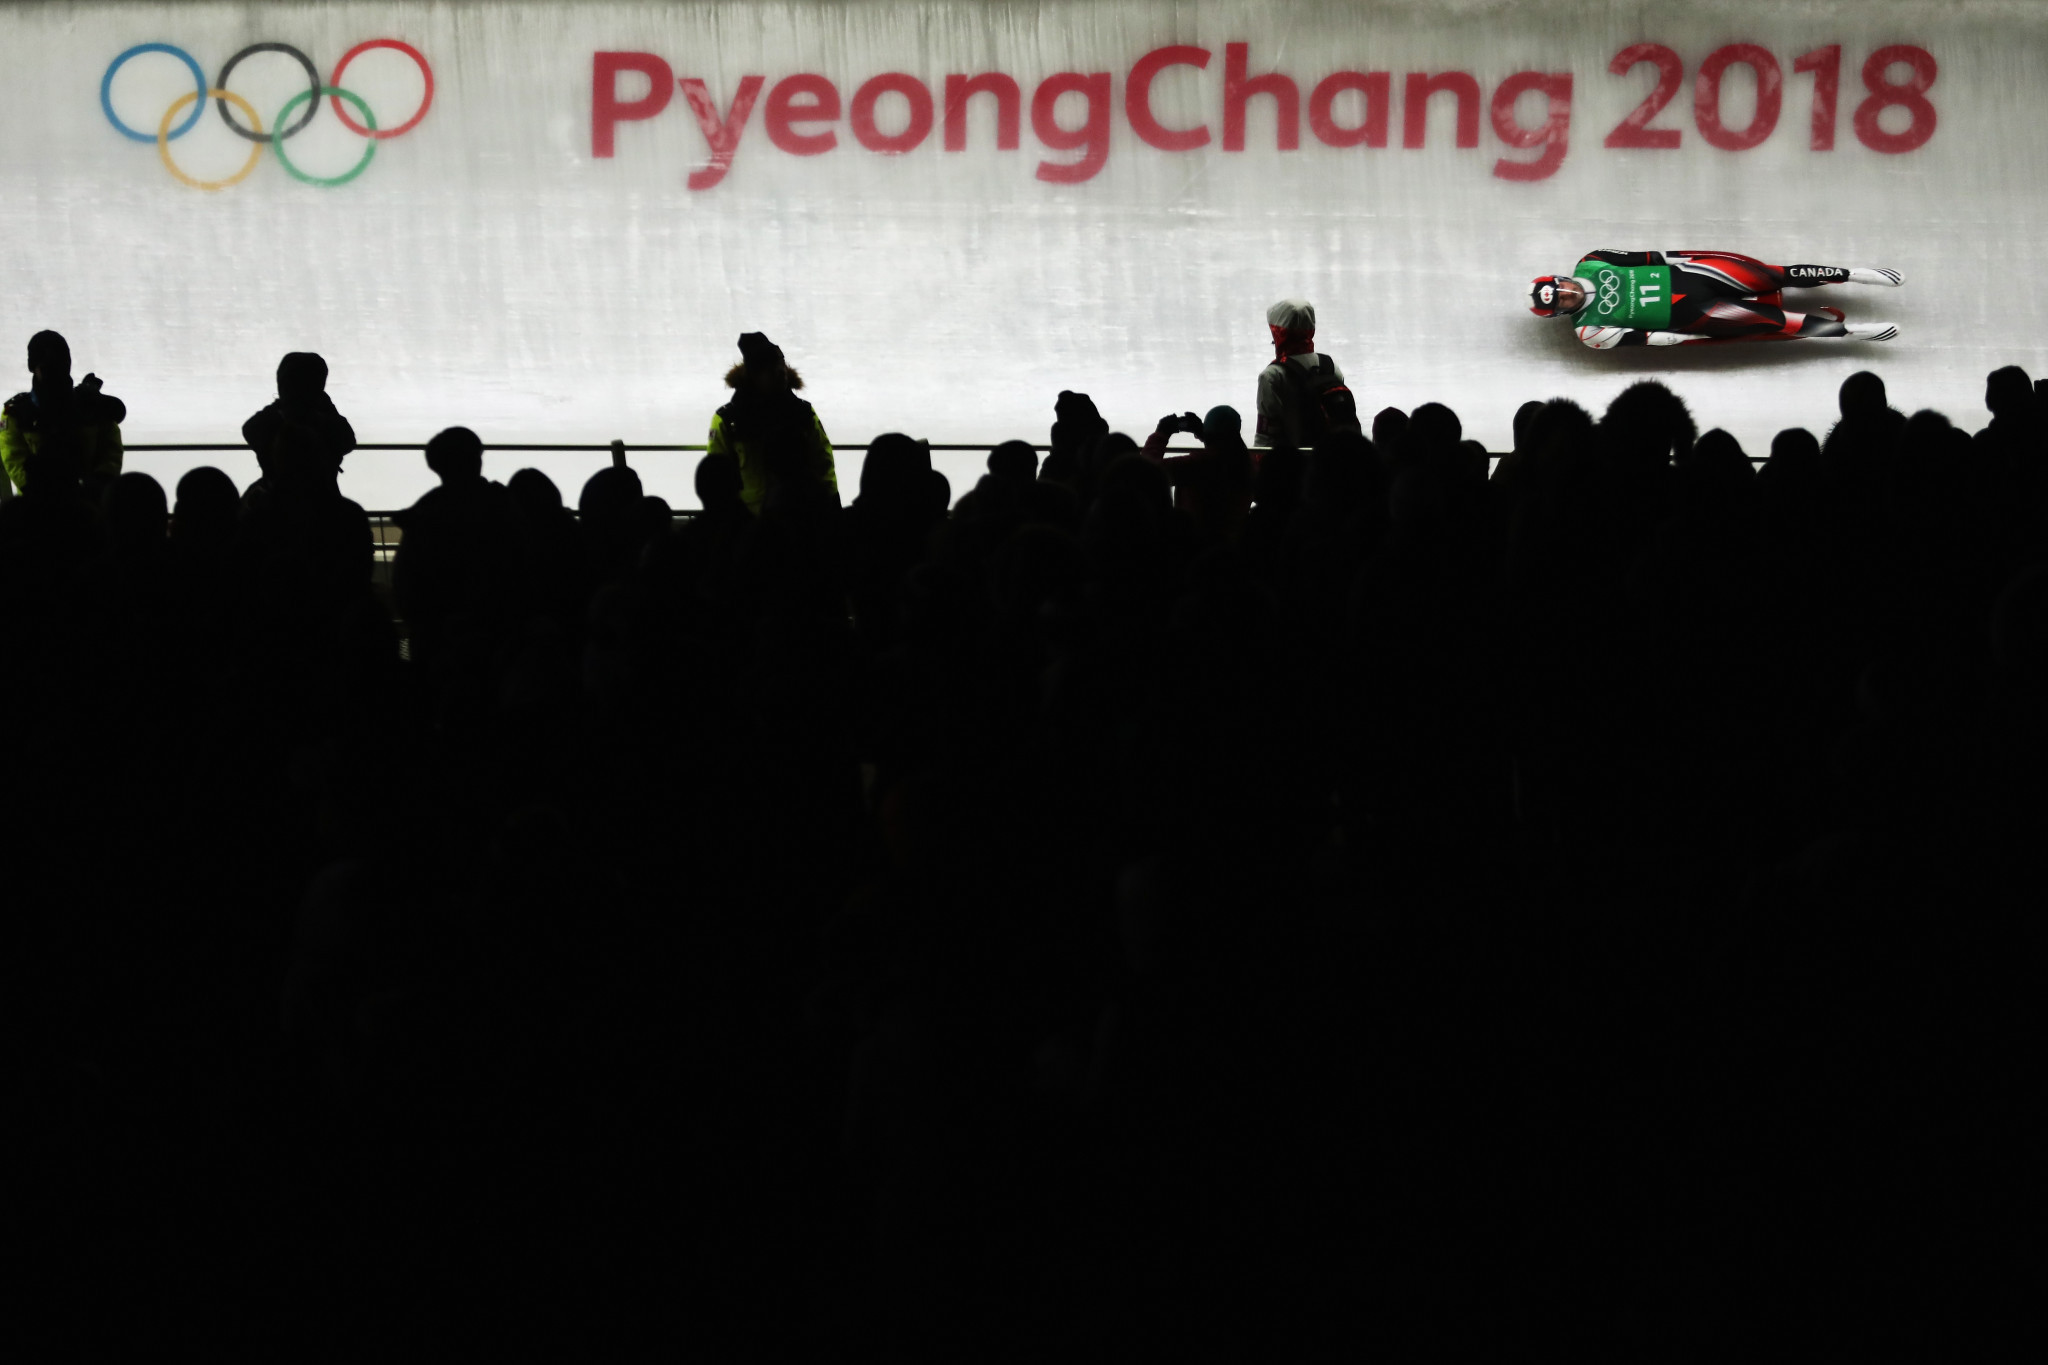 Gangwon 2024 will use many of the facilities built for Pyeongchang 2018 ©Getty Images